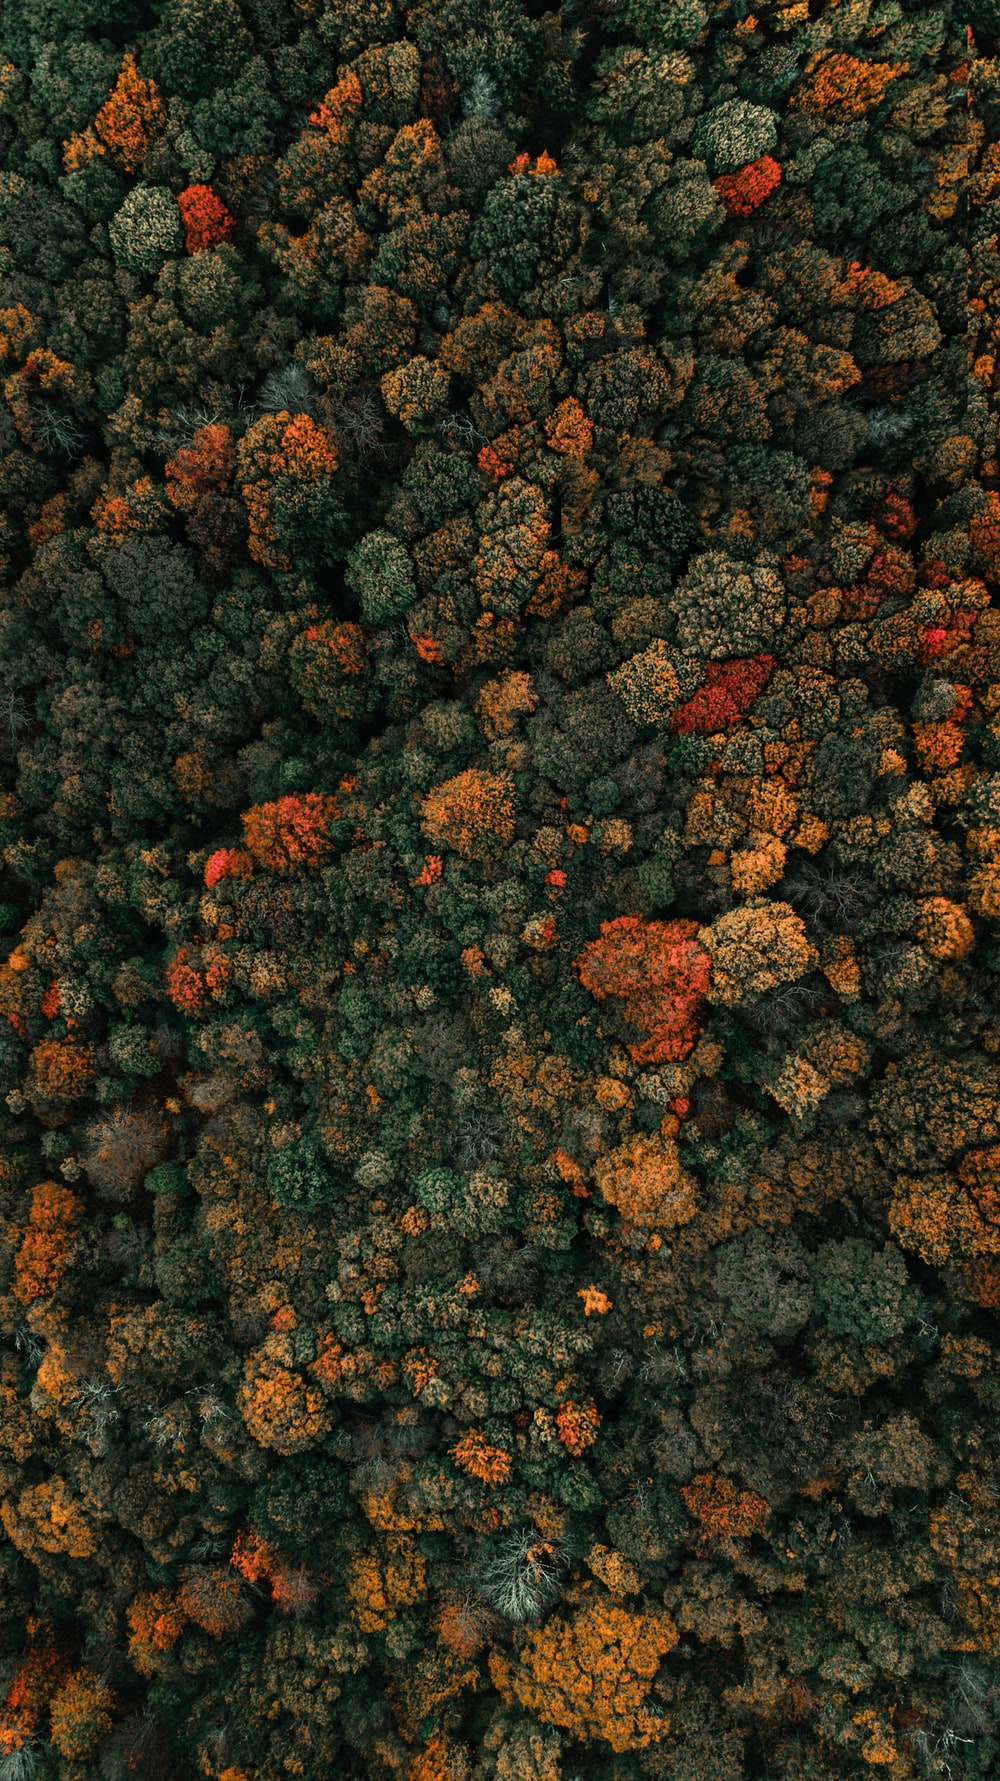 aerial photography of green-leafed trees